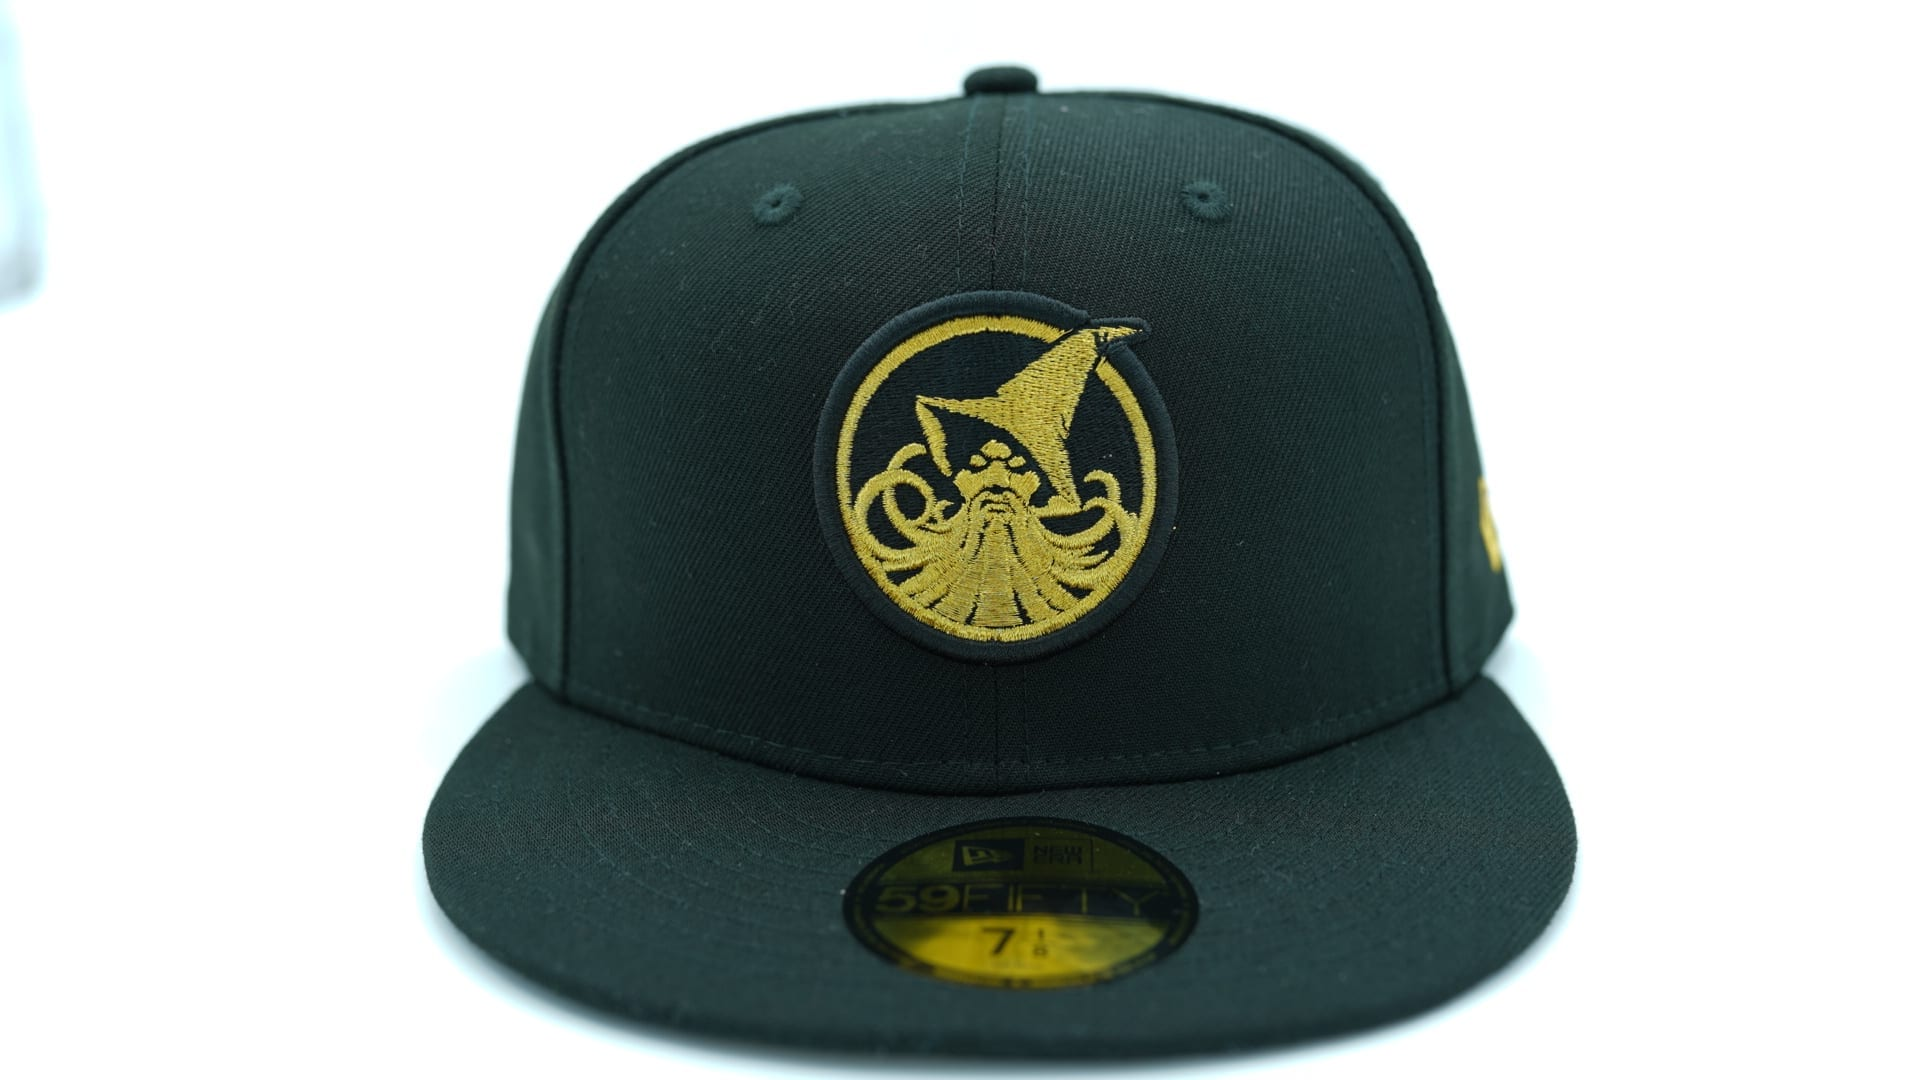 Ripstop Crossed Bats Black 59Fifty Fitted Cap by NEW ERA x JUST FITTEDS